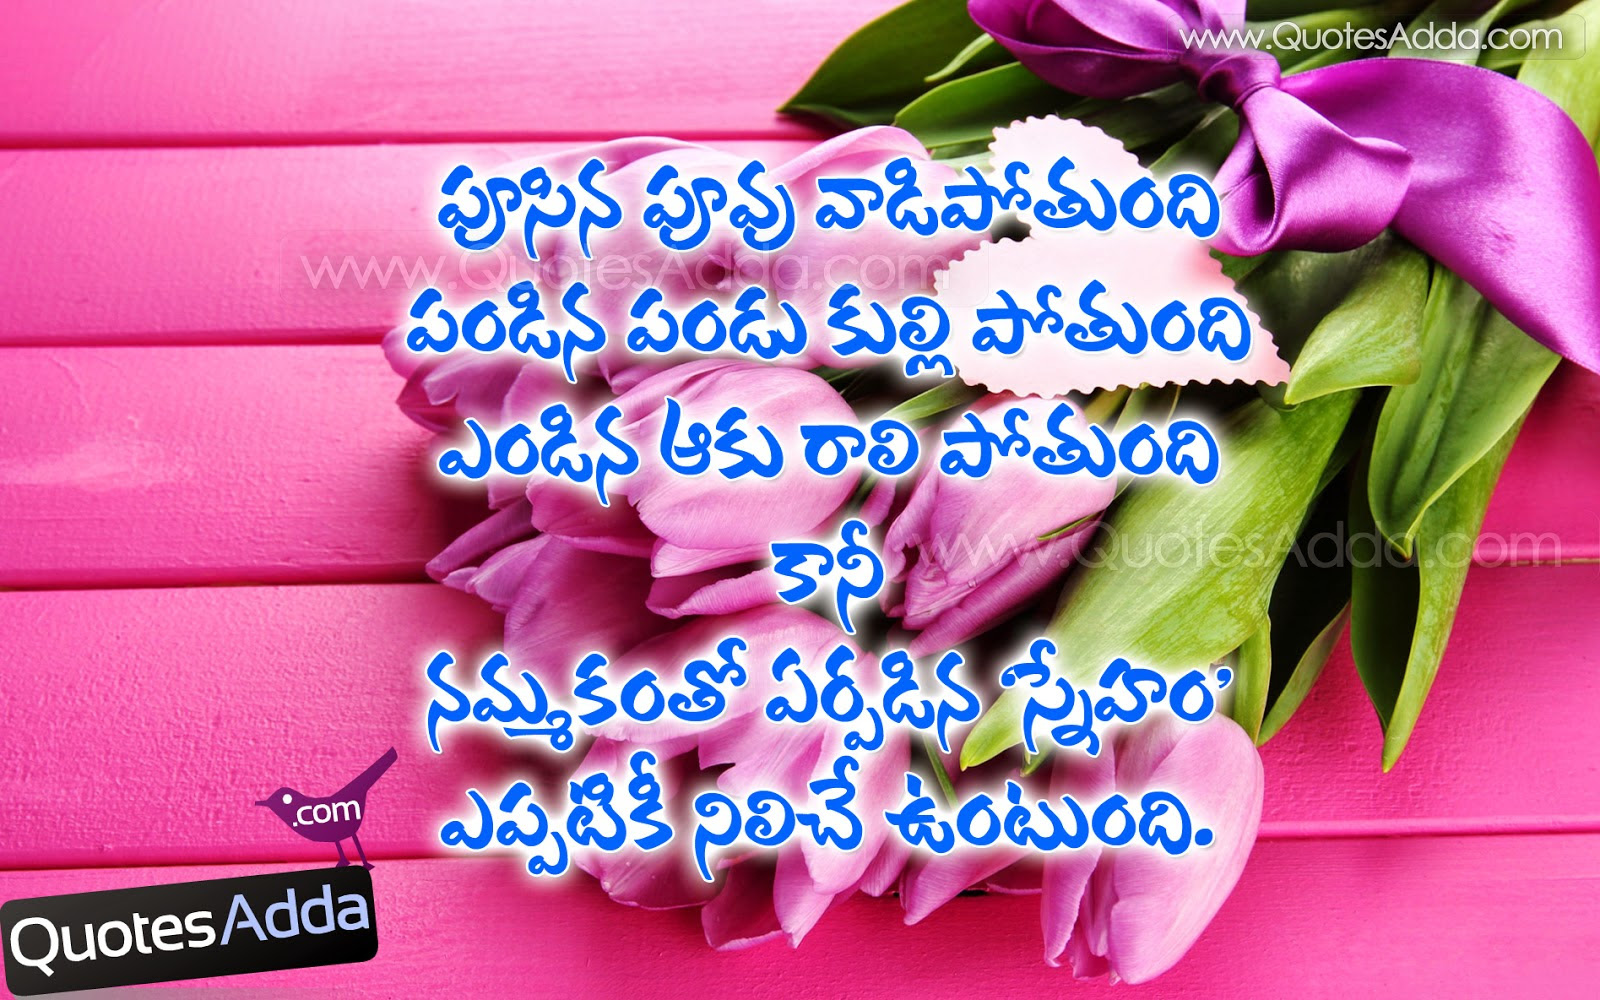 Telugu Friendship Quotes Friendship Telugu